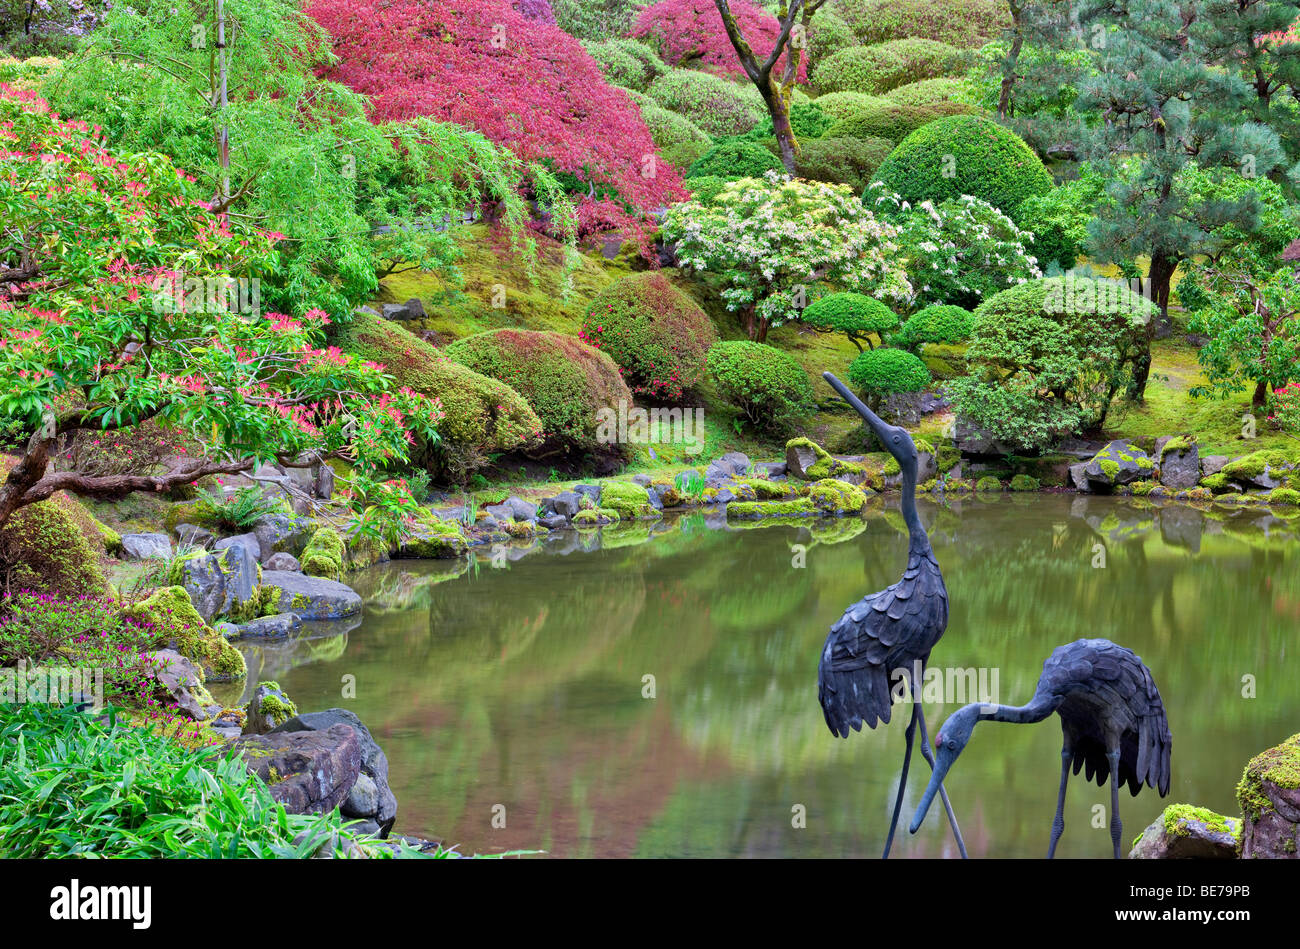 Pond with heron sculpture and early spring growth. Portland Japanese Gardens, Oregon. - Stock Image